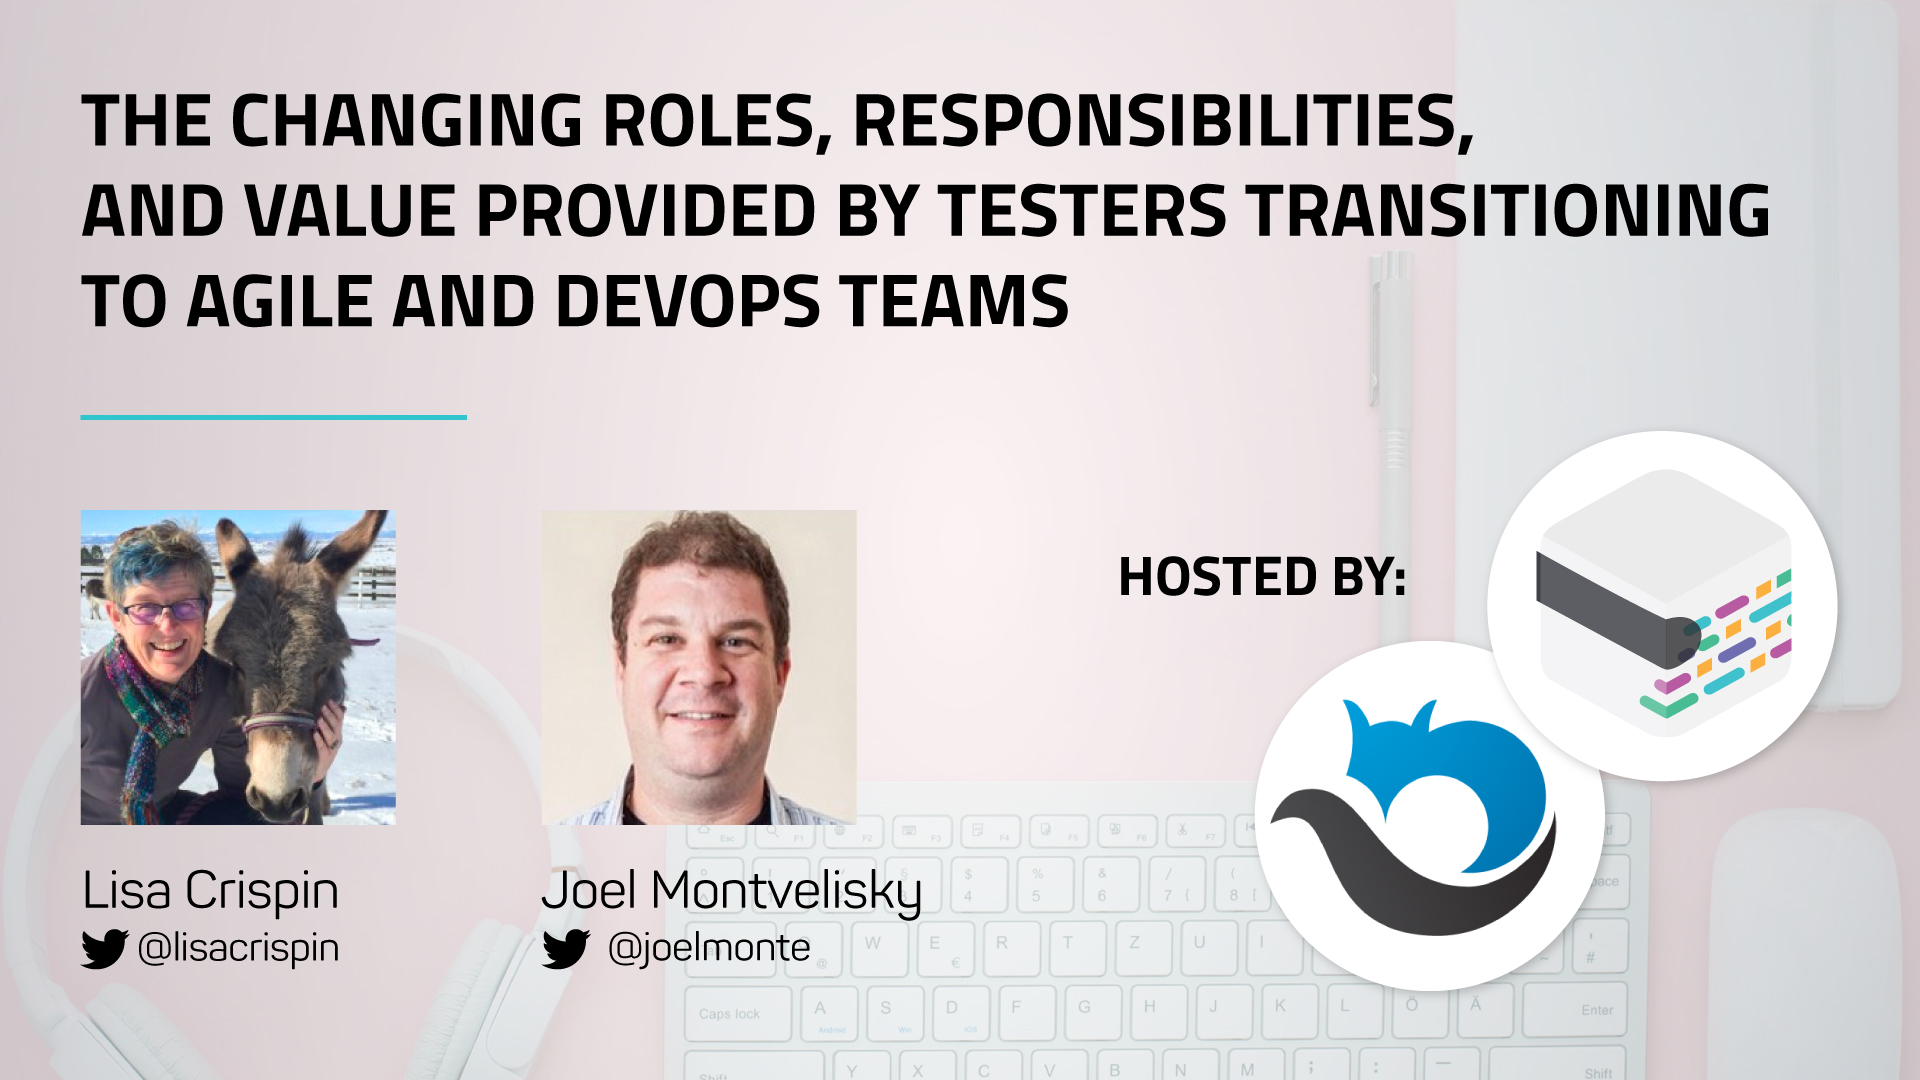 [WEBINAR] Changing roles of testers transitioning to Agile & DevOps